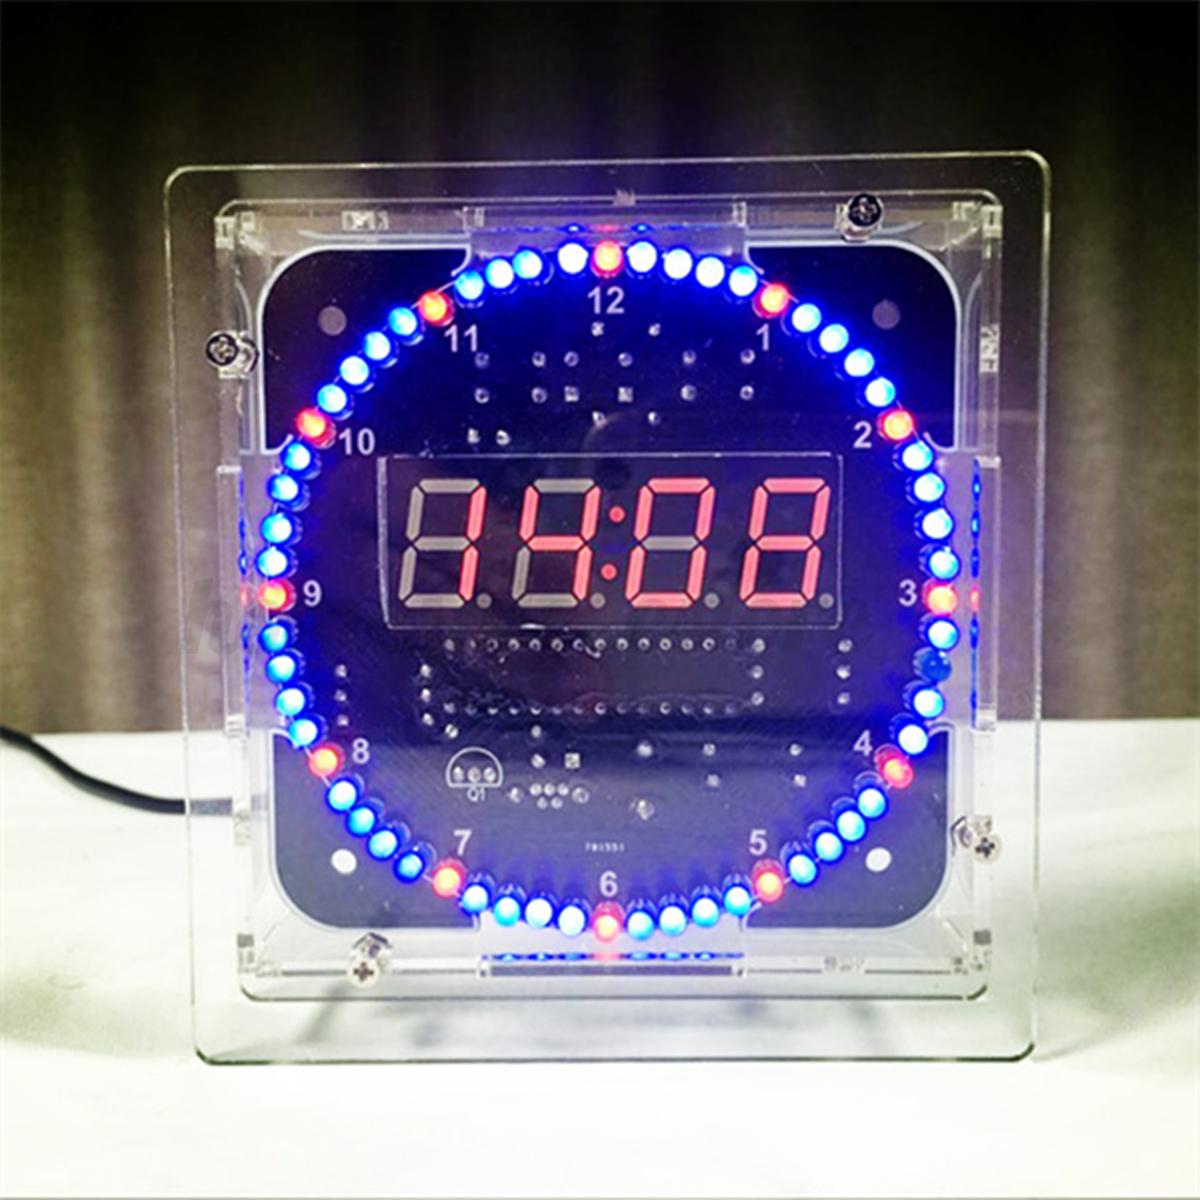 rotating led electronic temperature display digital clock diy learning kit box ebay. Black Bedroom Furniture Sets. Home Design Ideas